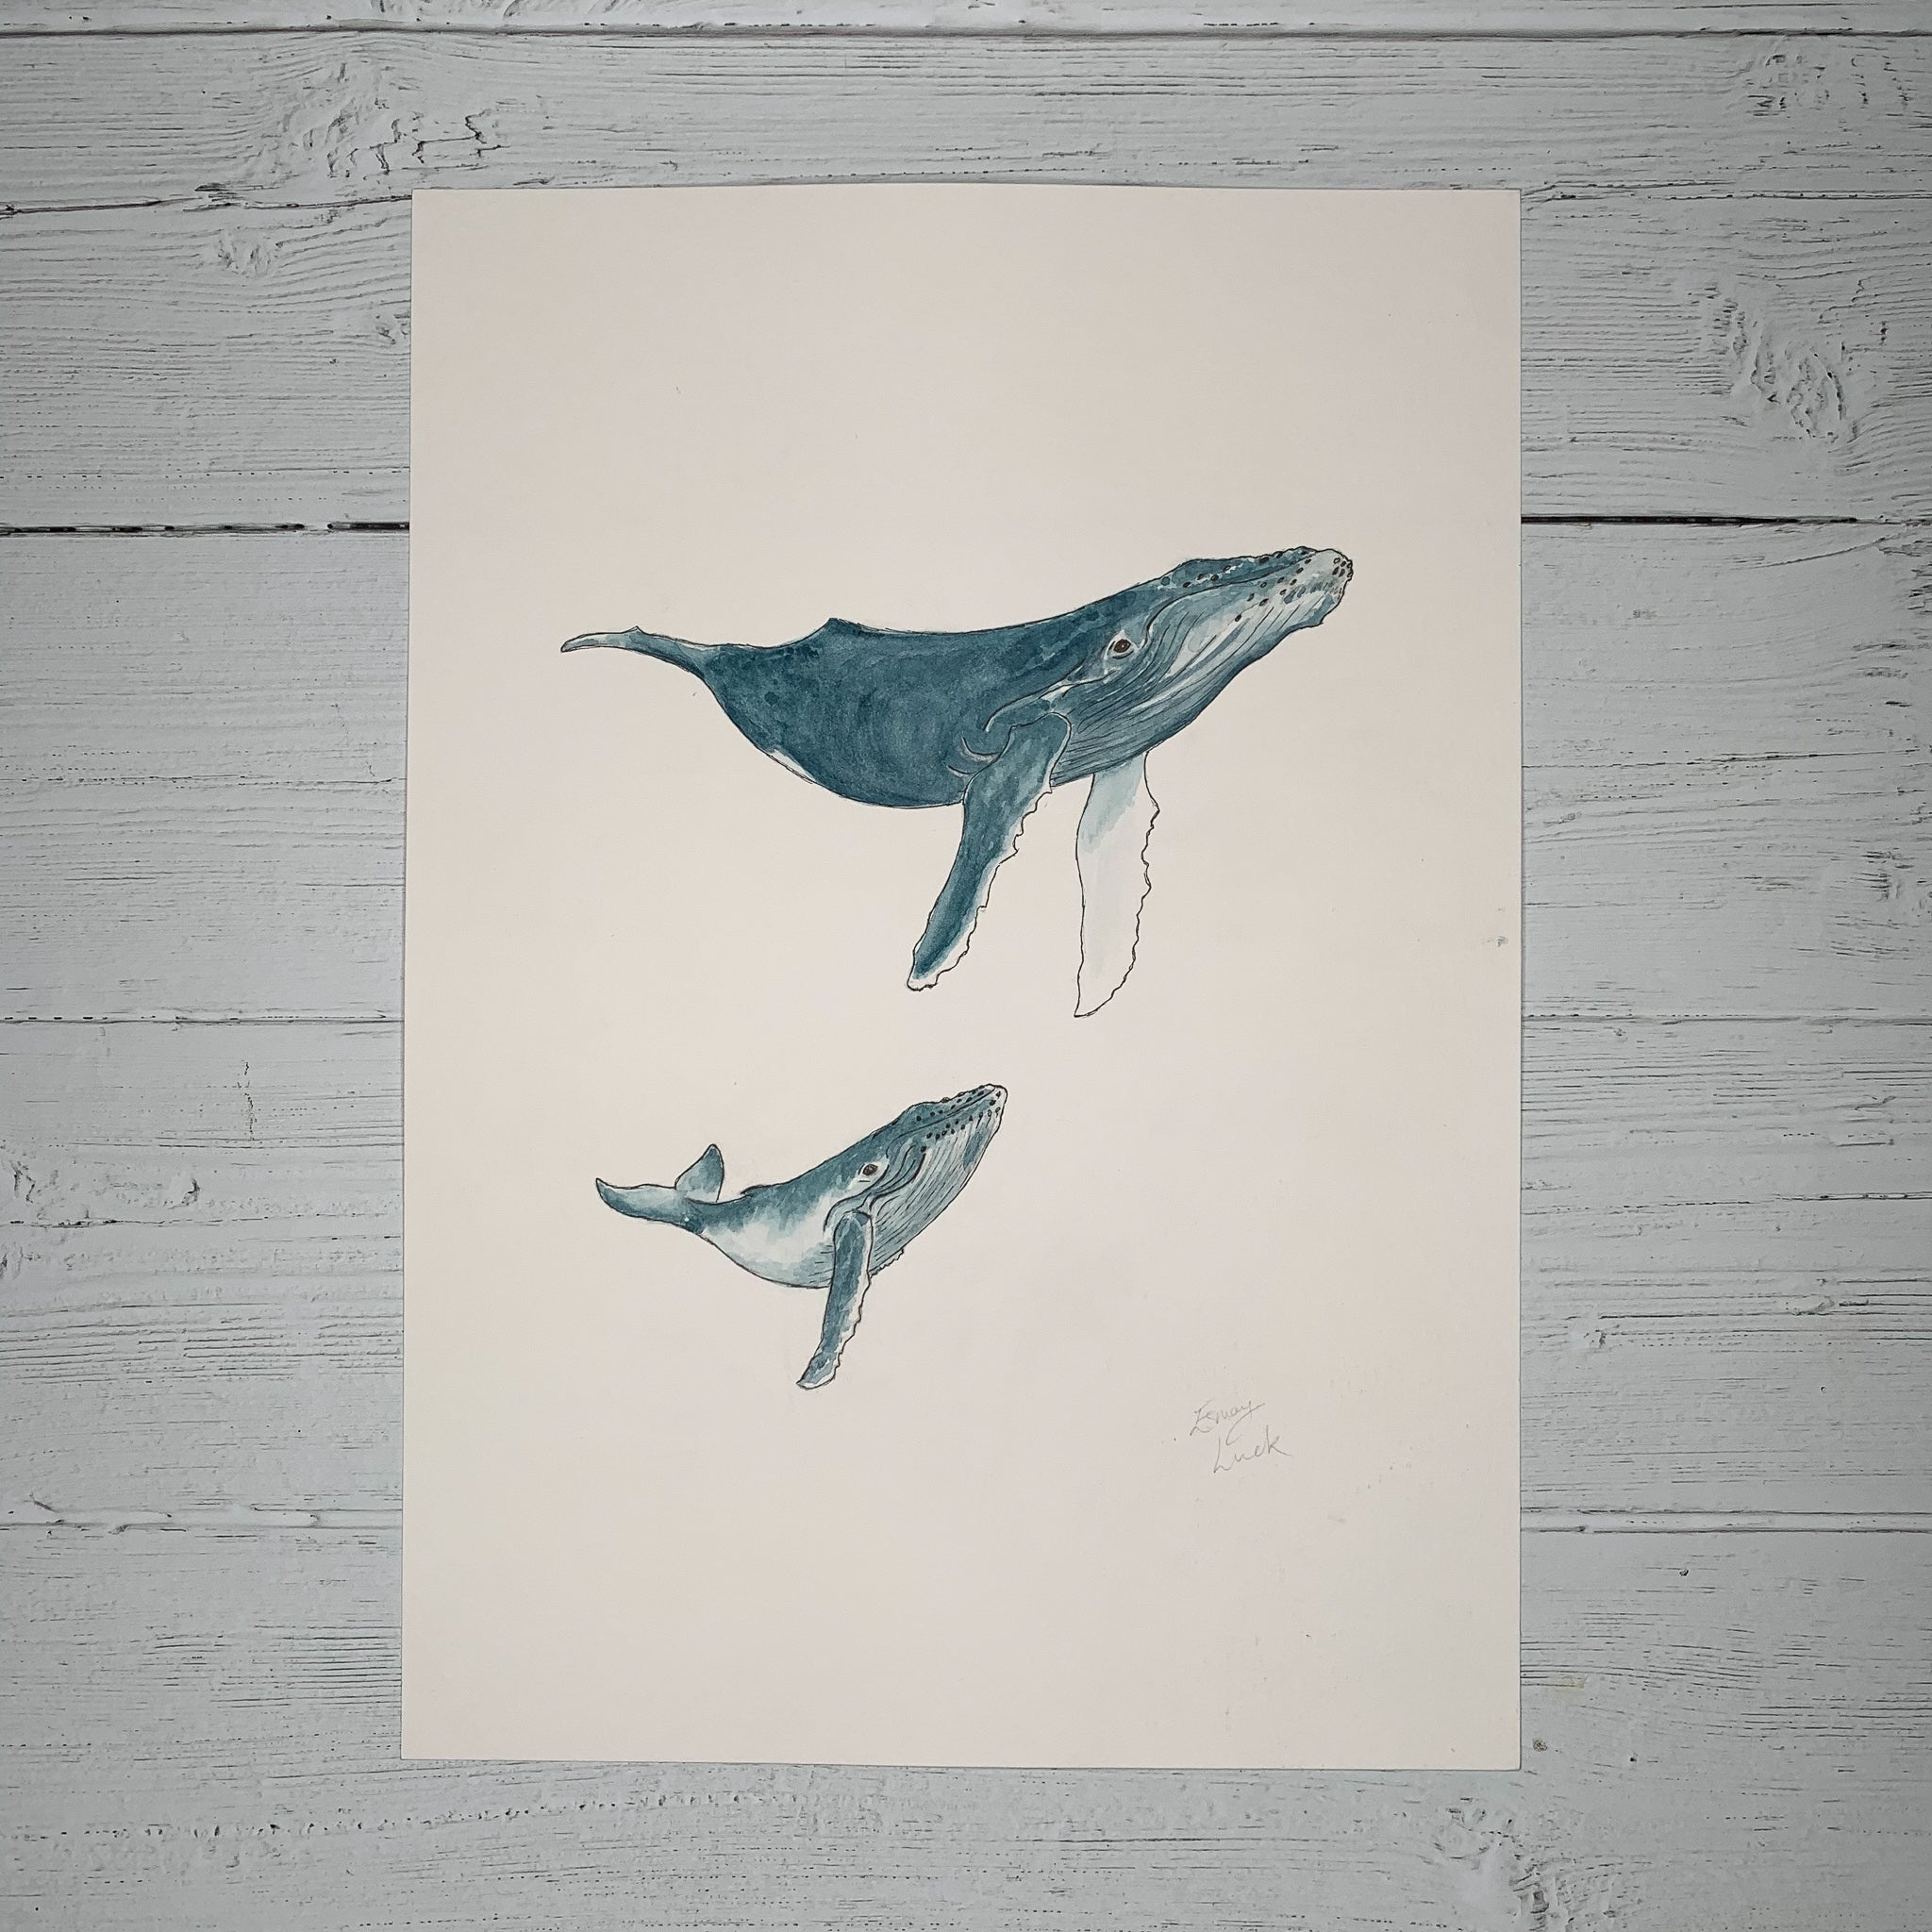 Mother & Baby Humpback Whales - Original (1 of 1)